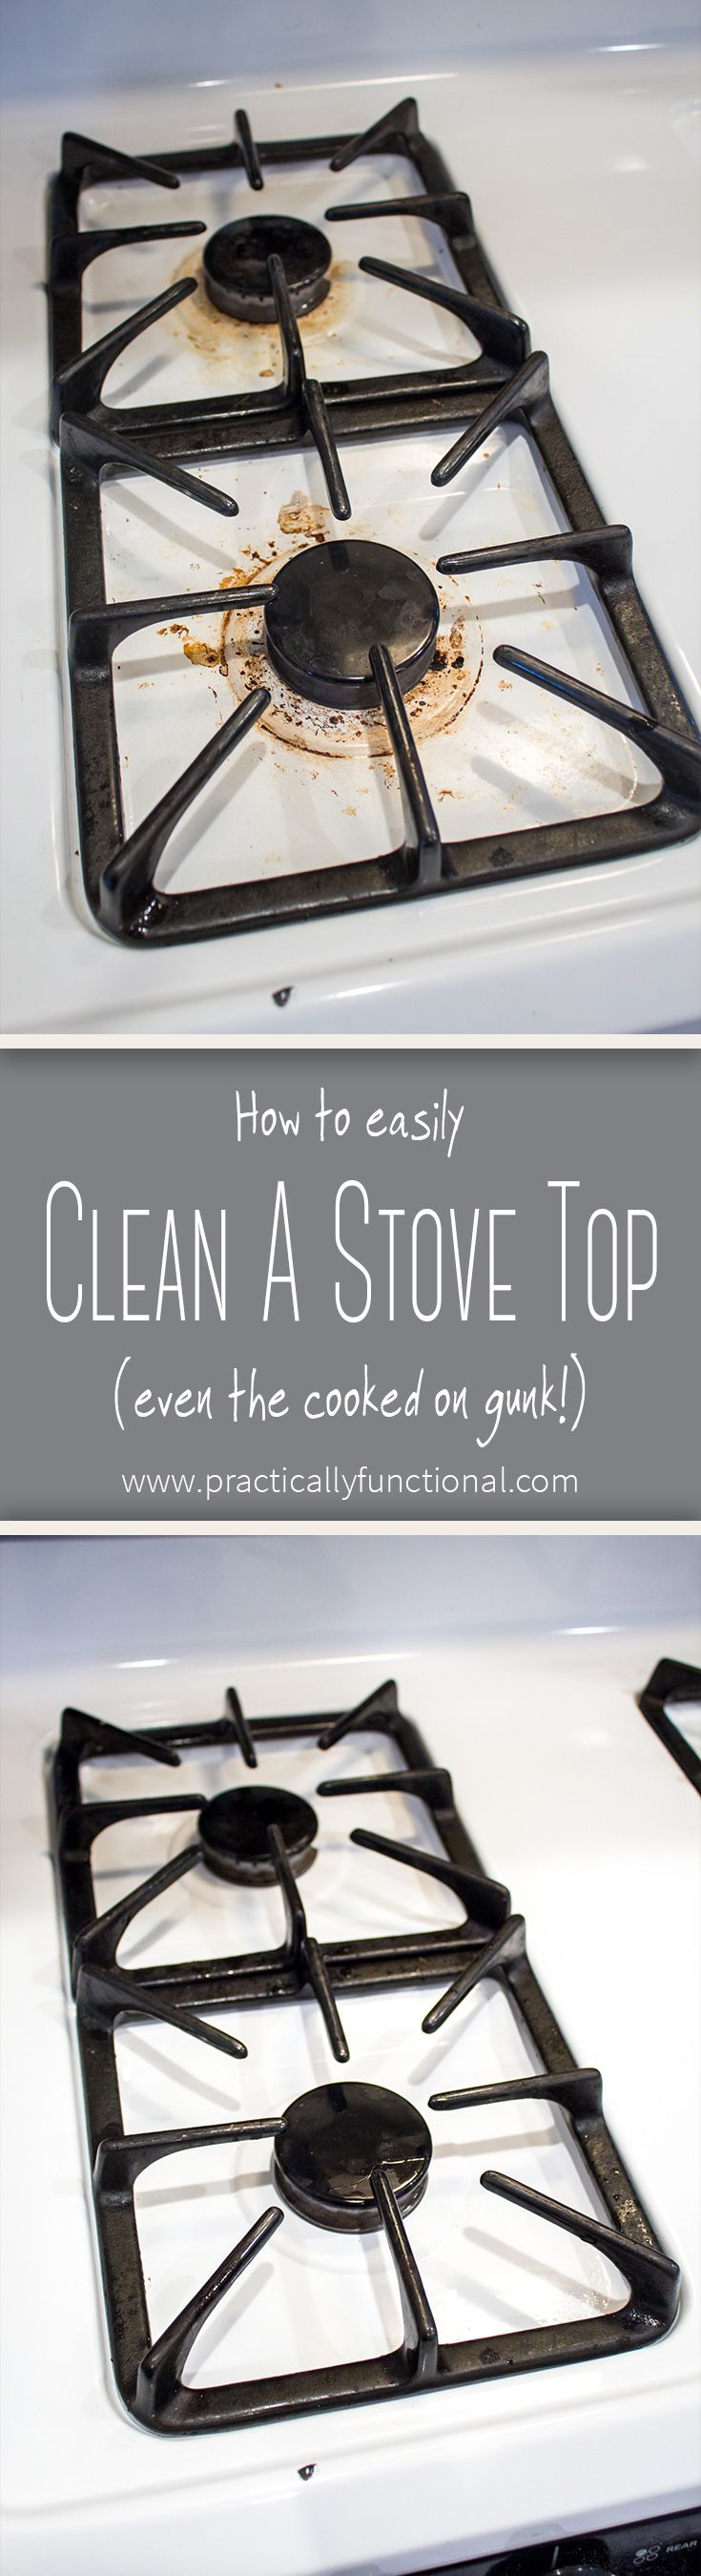 Best 25+ Clean stove grates ideas on Pinterest